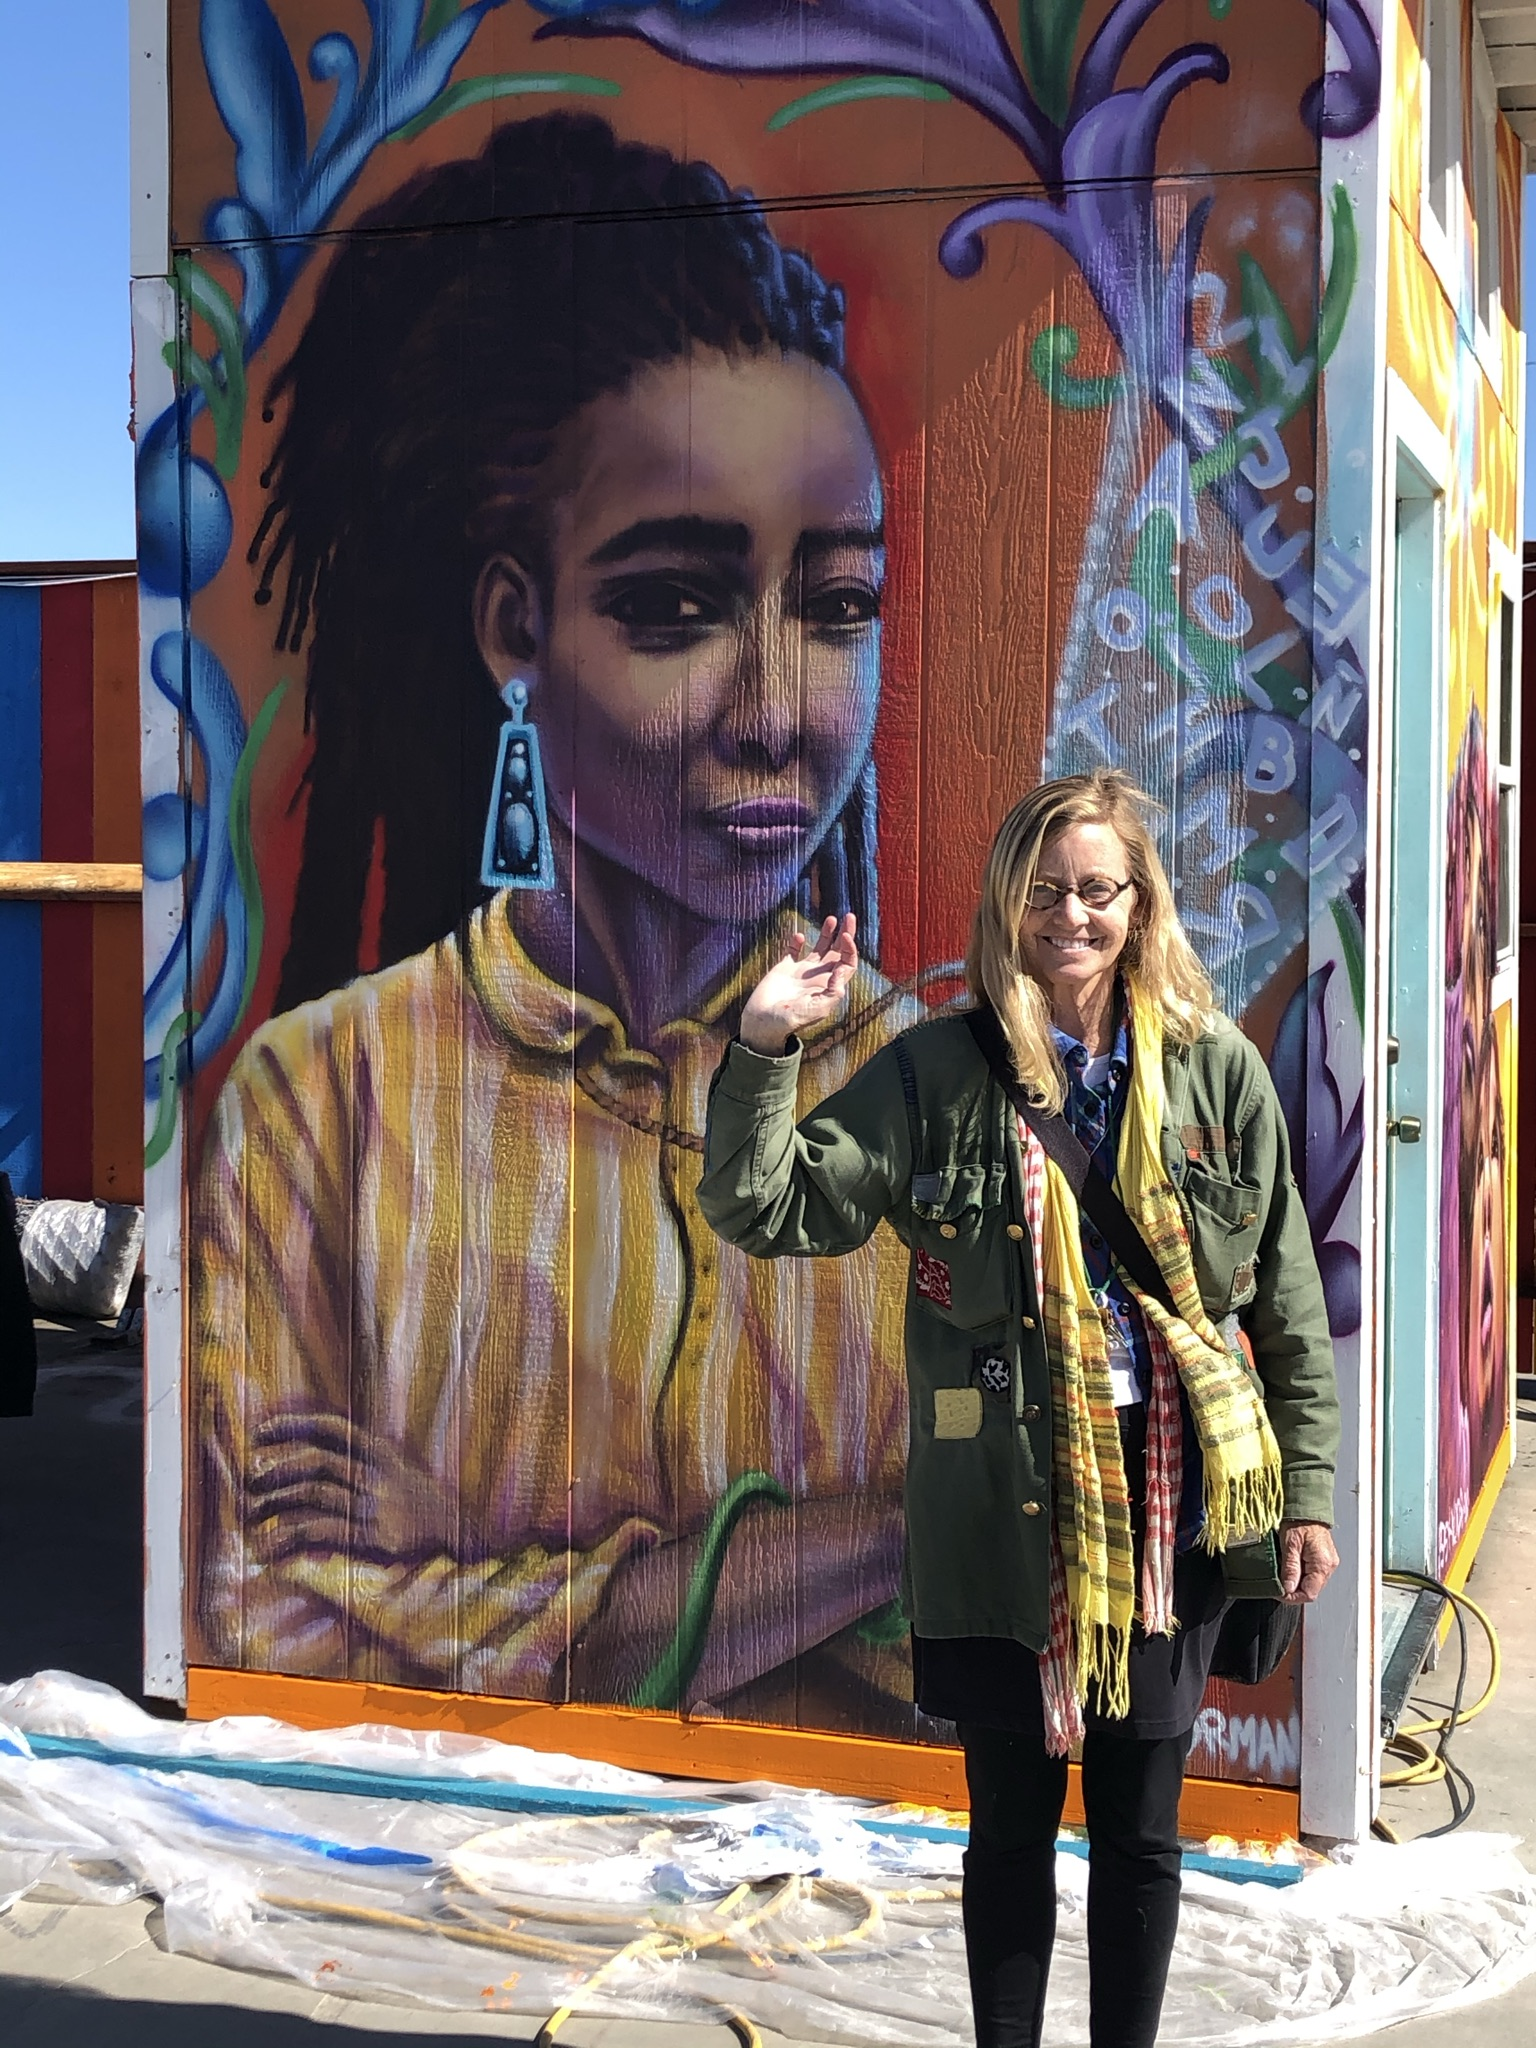 Sally and Mural